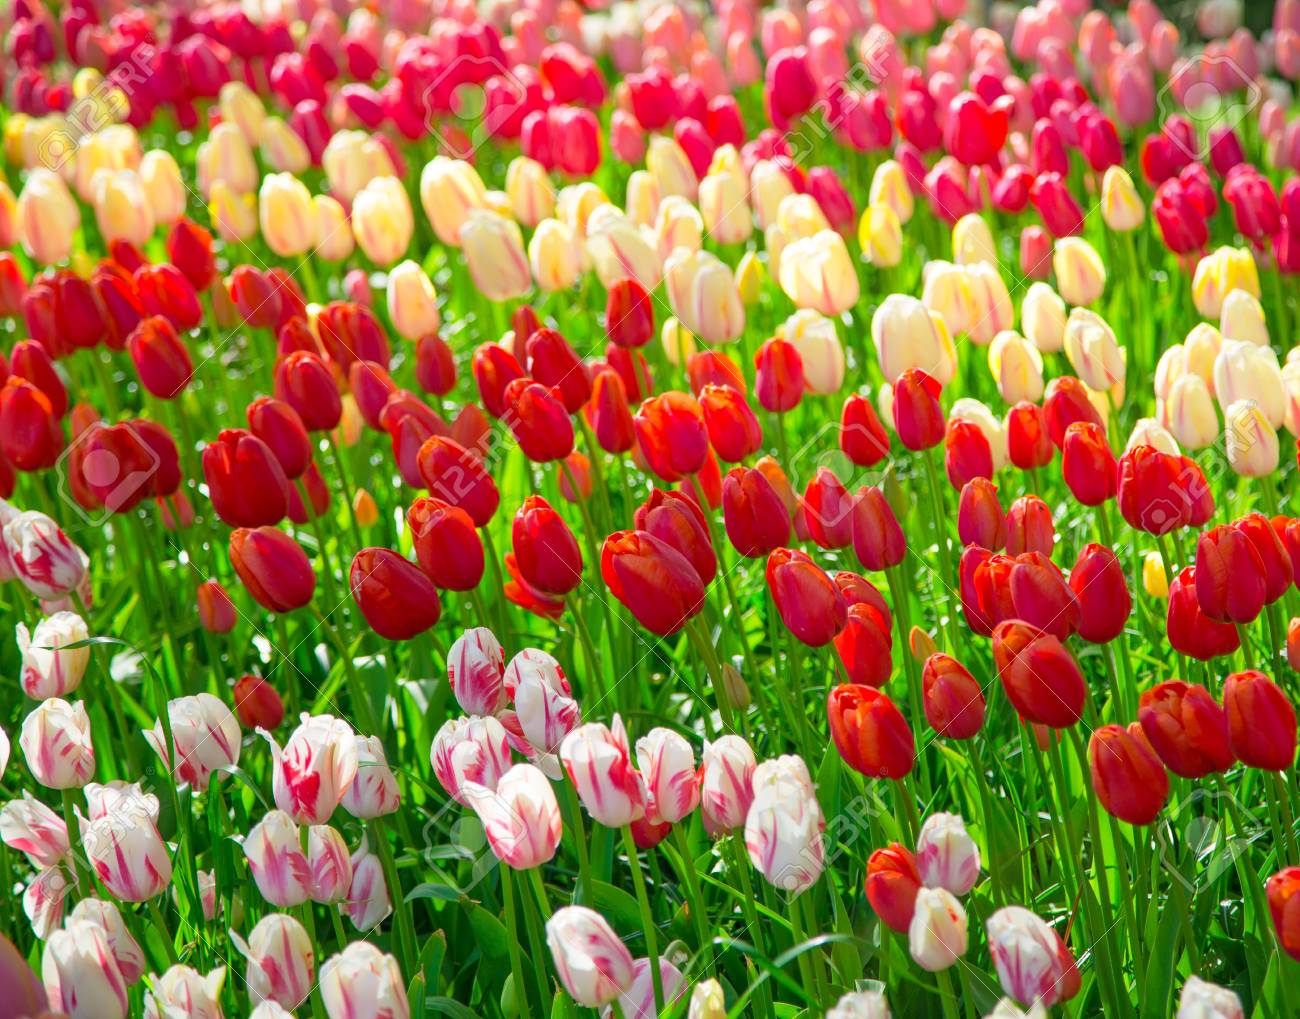 Flowers tulips glade of red pink and white fresh tulips colorful flowers tulips glade of red pink and white fresh tulips colorful tulips in mightylinksfo